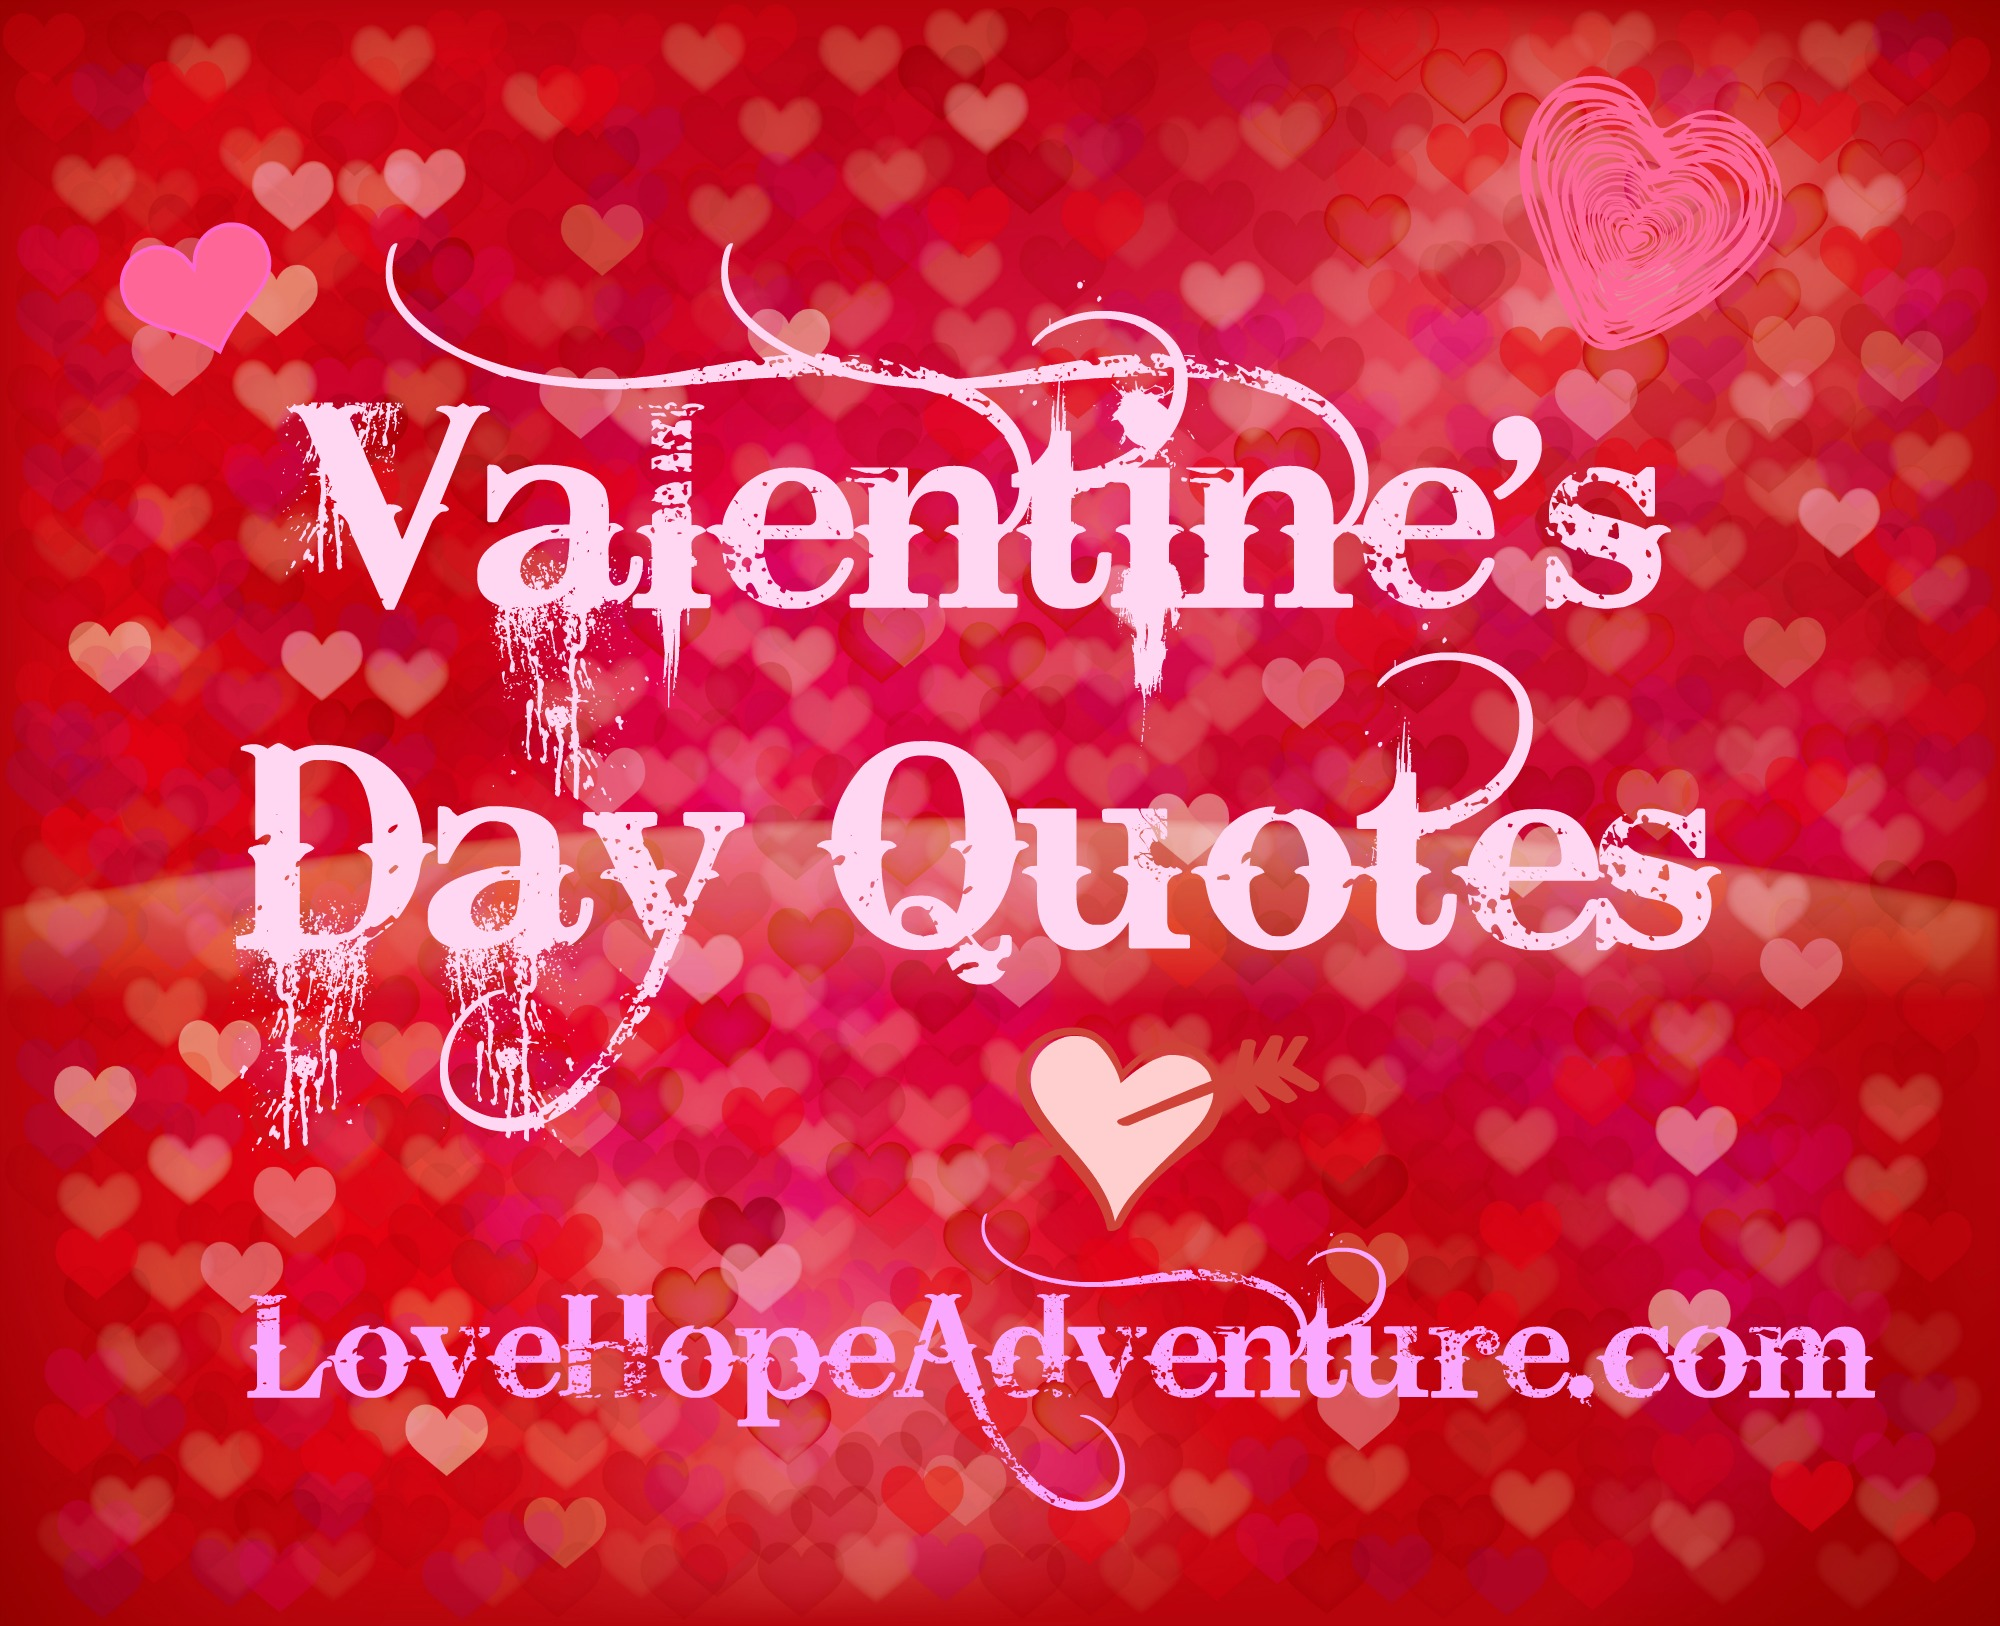 Valentine 39 s day quotes love hope adventure marriage for Quotes on valentine day